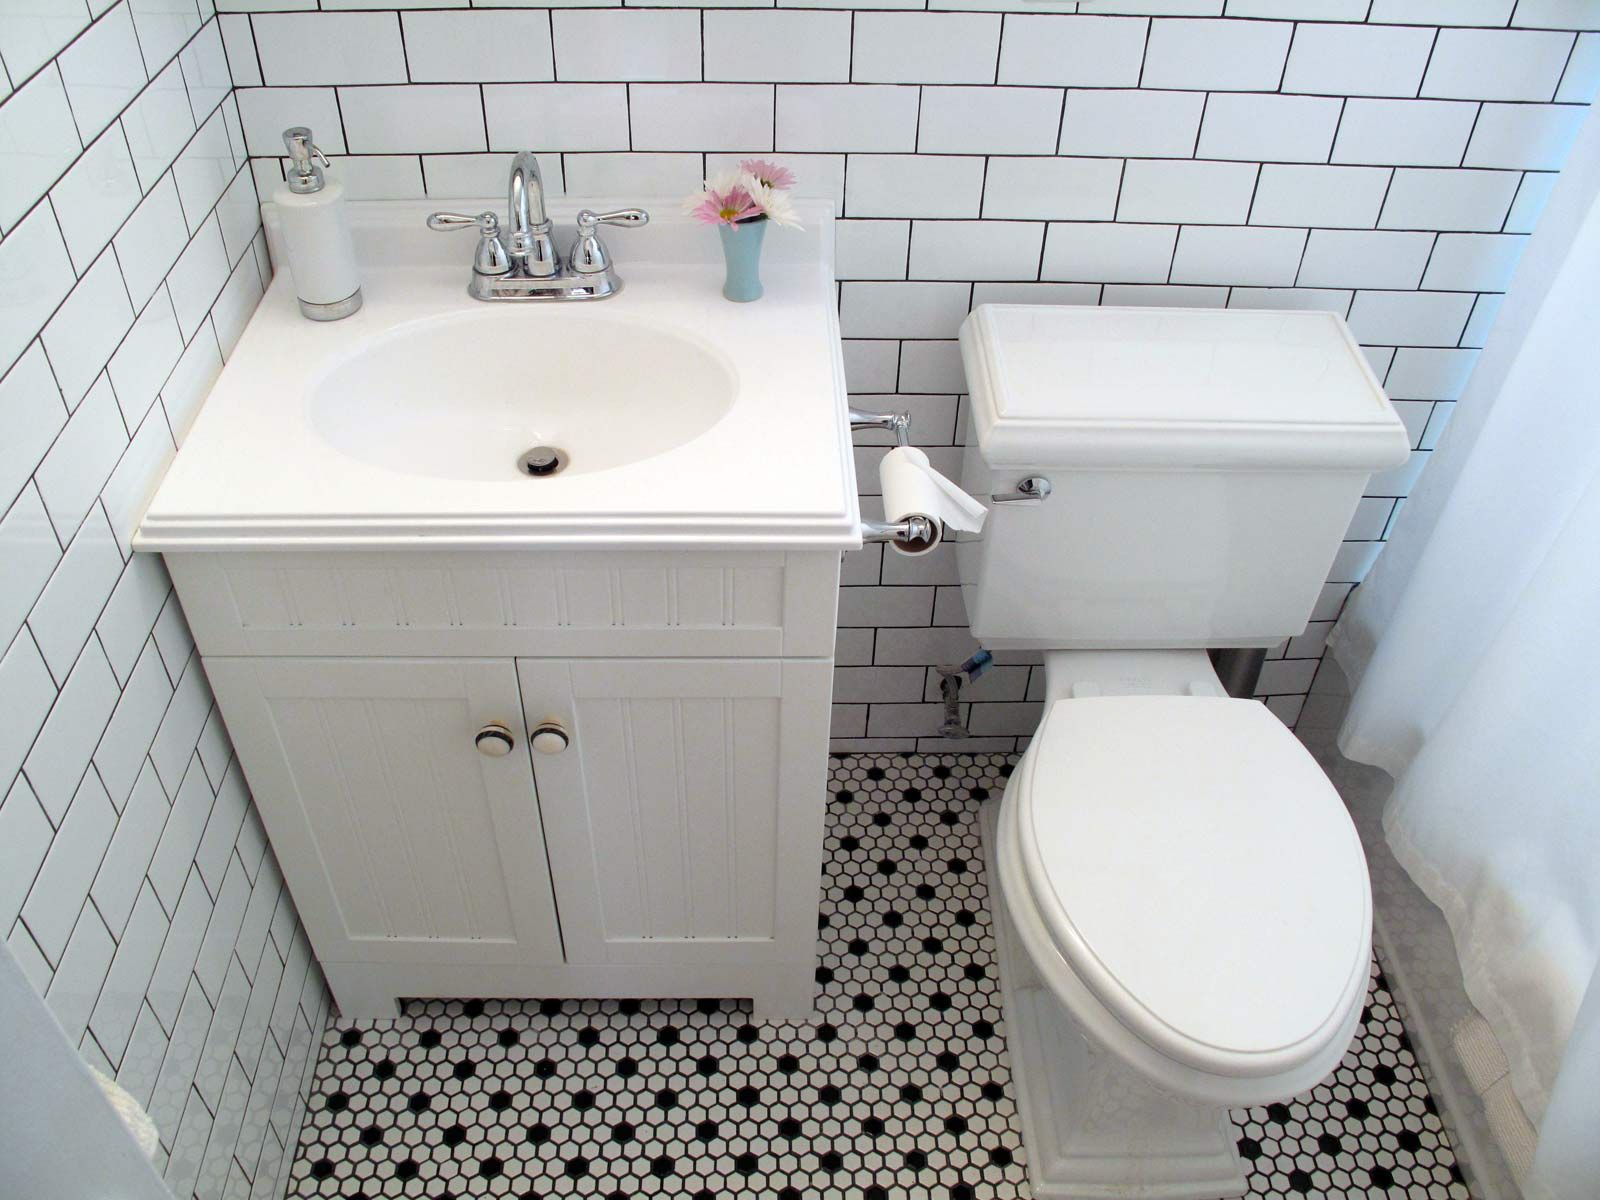 Vintage black and white bathroom ideas - Vintage Black And White Floor Tile Bathroom Cabinetsbathroom Sinksbathroom Ideasbudget